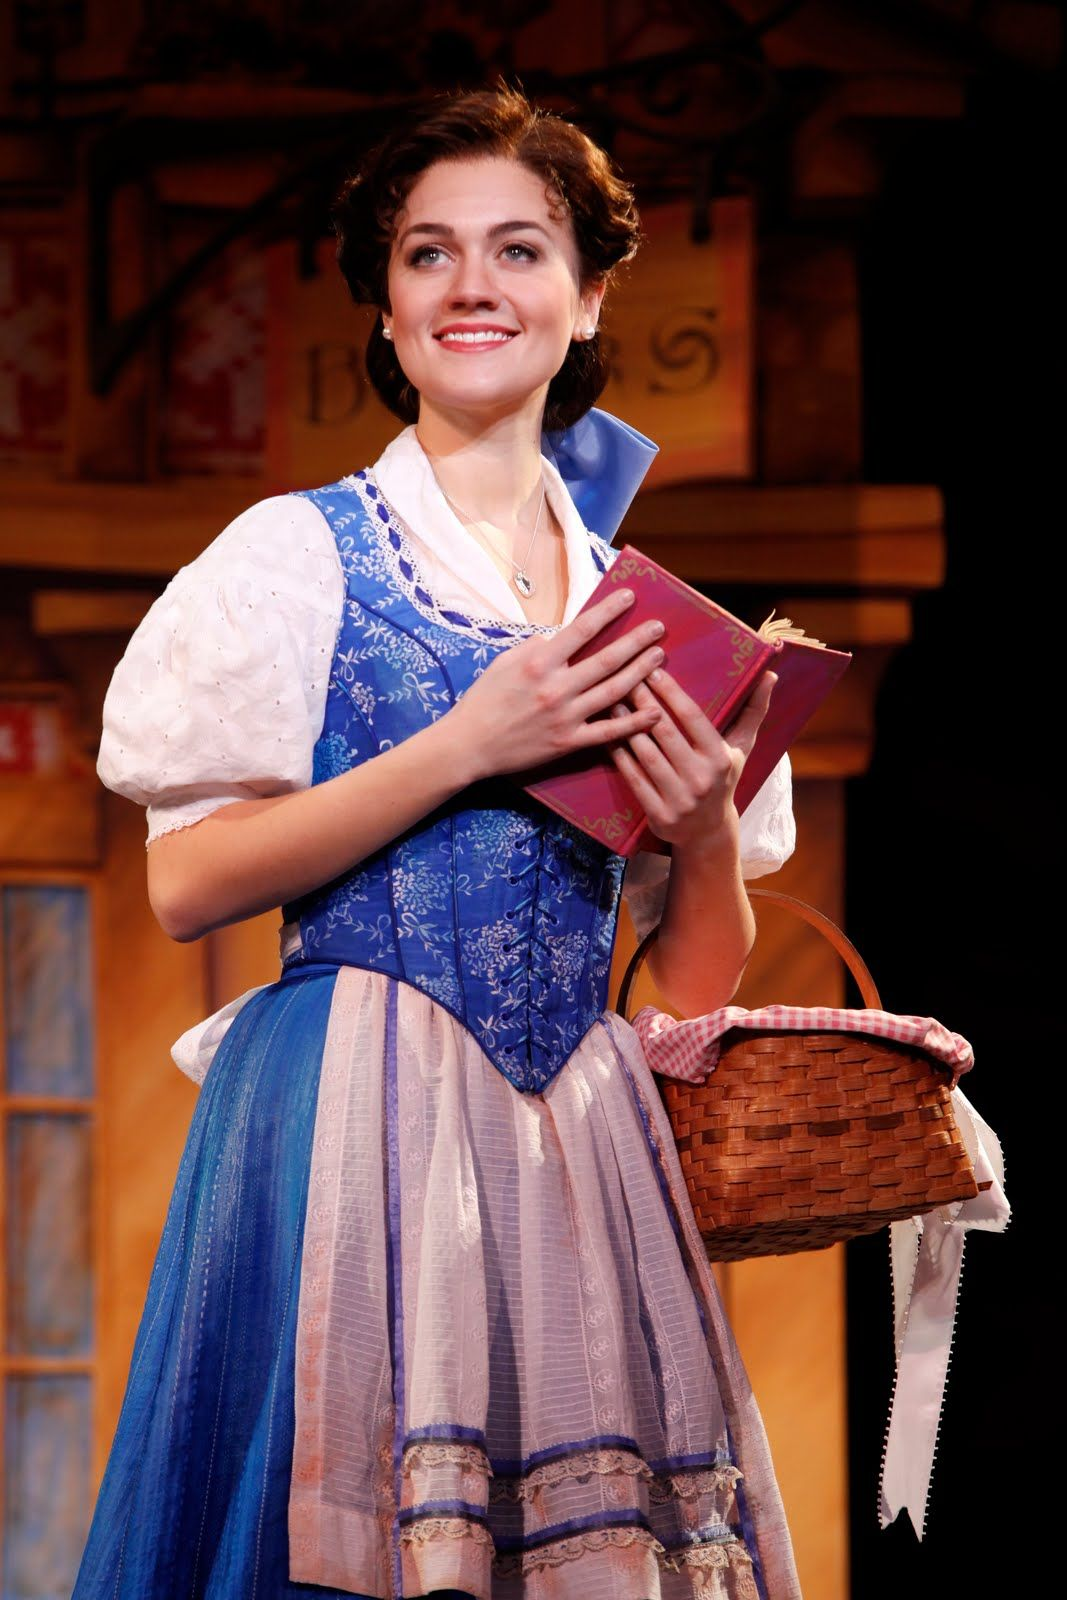 I LOVE the costume they used for Belle in the Broadway version of Beauty and the Beast. It so perfectly combines the cartoon version with the French culture and era!